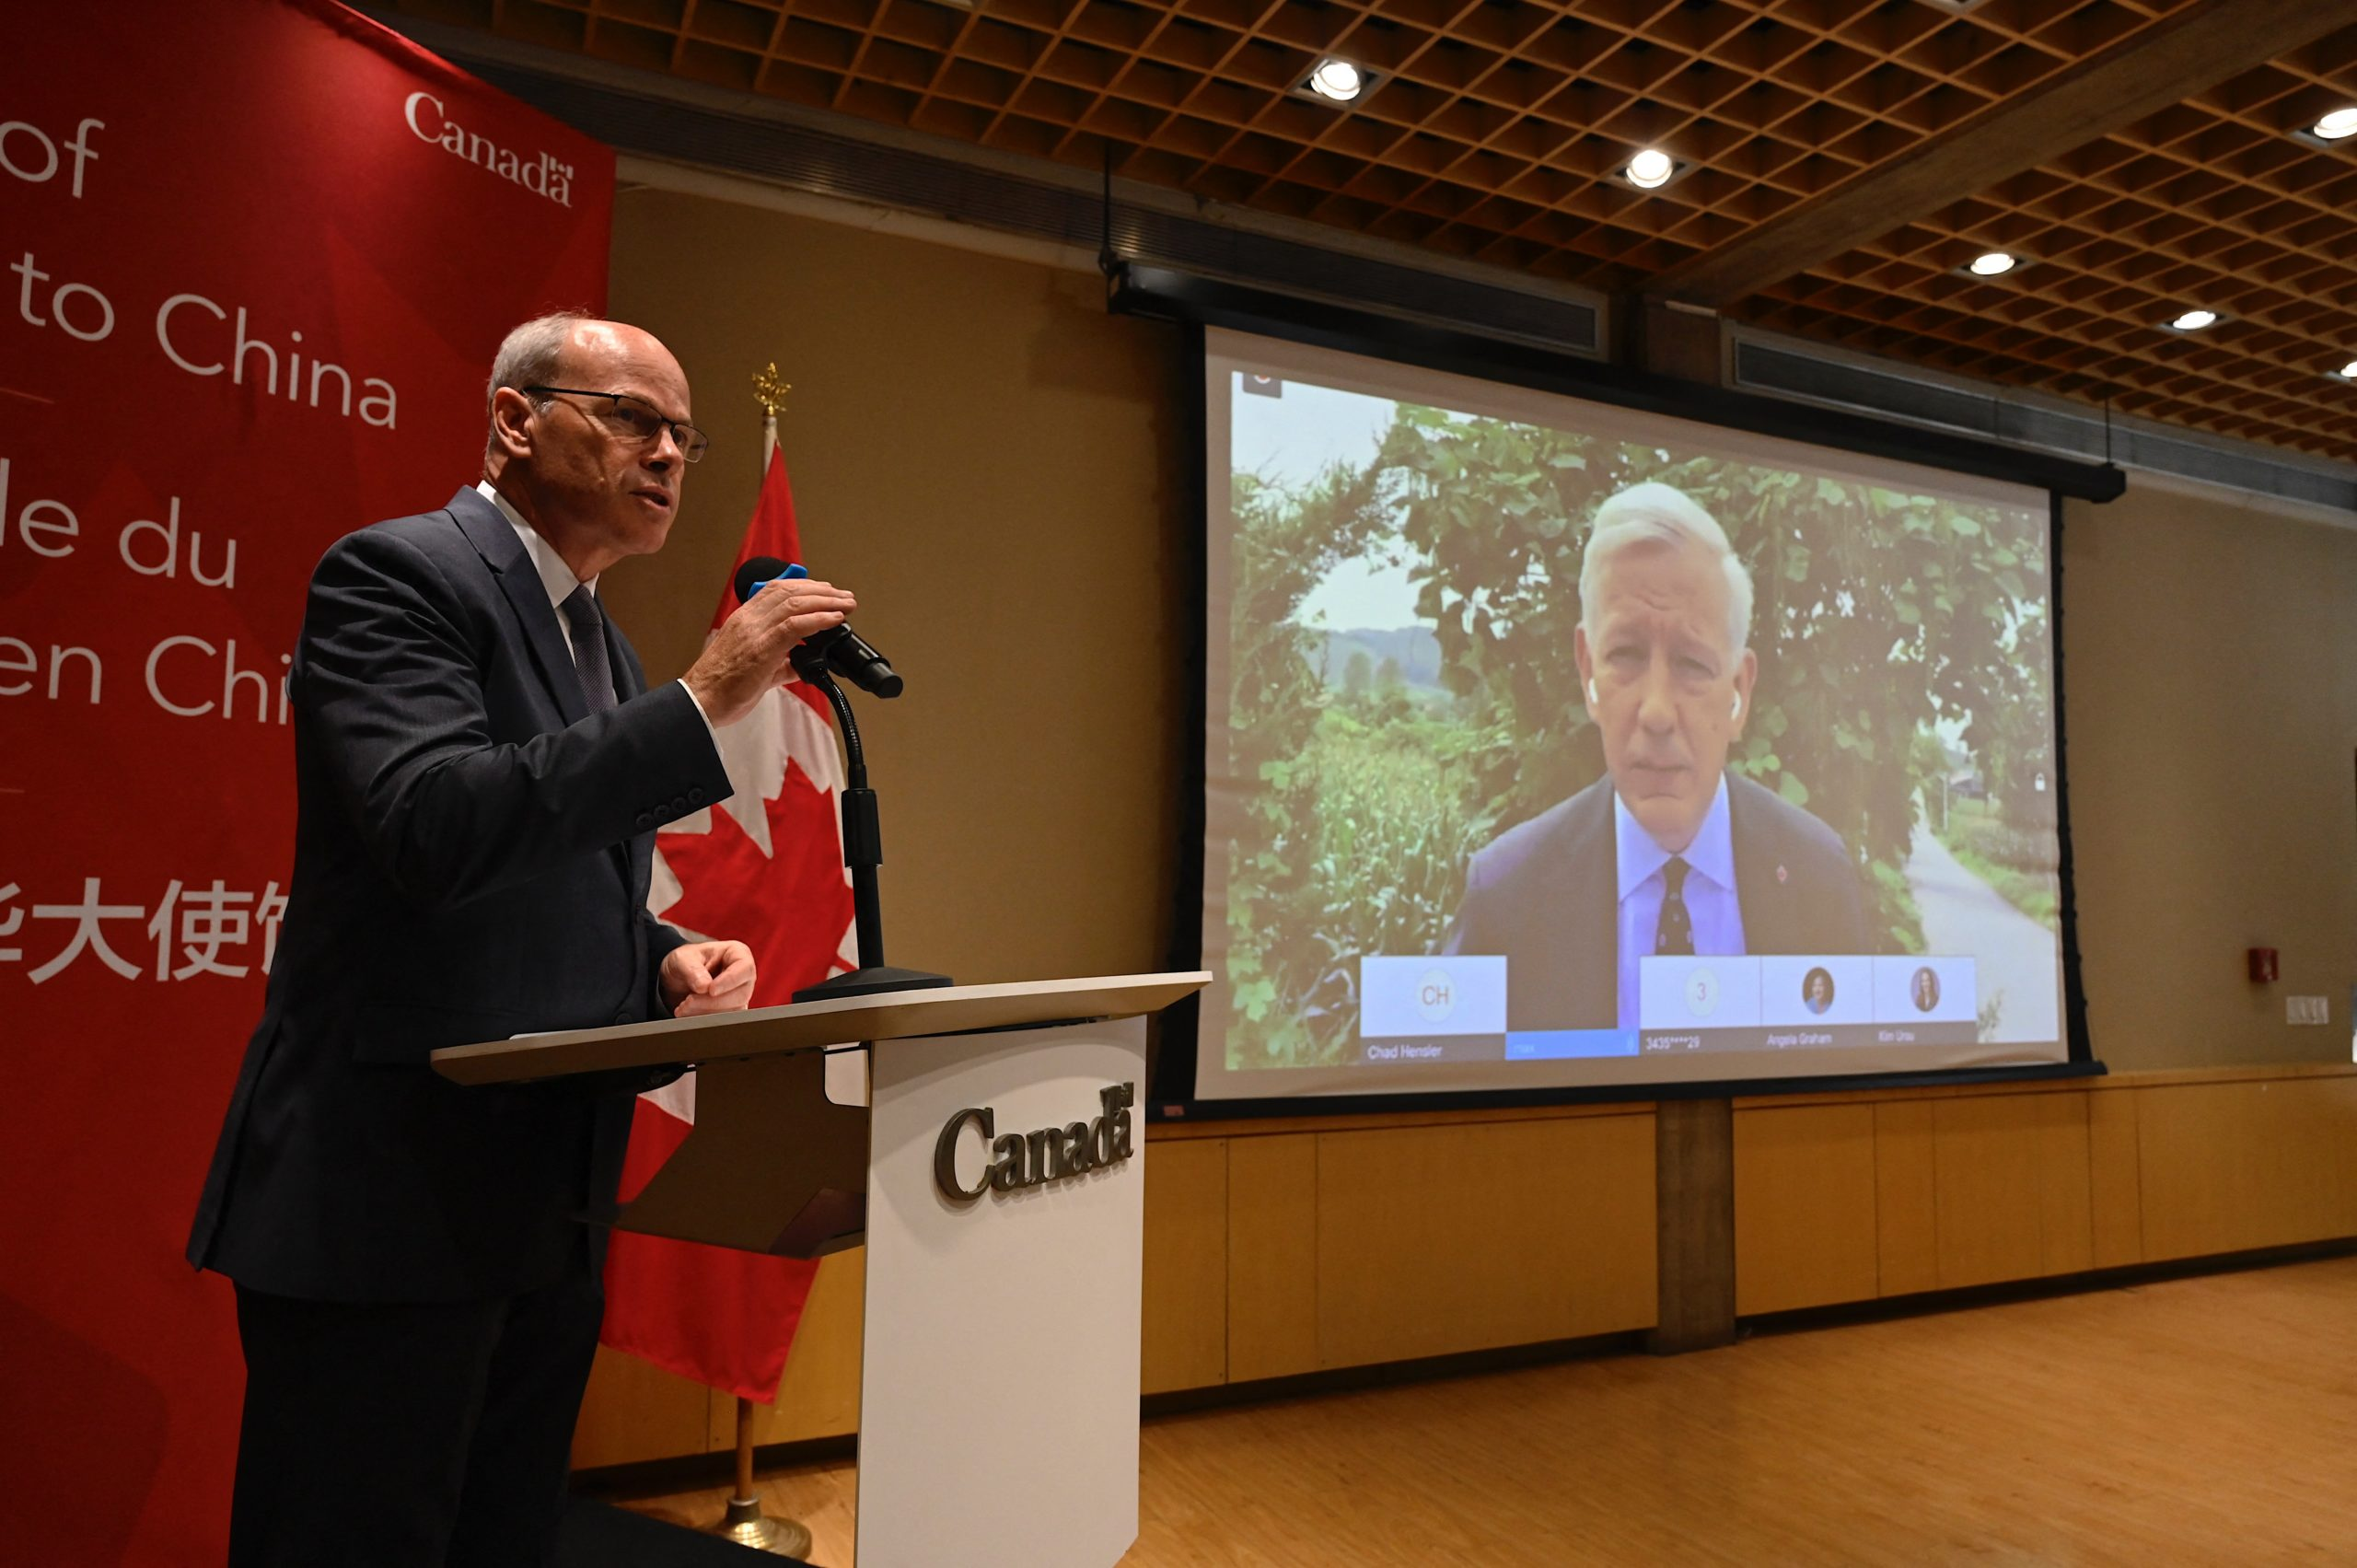 A screen shows Canadian Ambassador Dominic Barton delivering a statement from Dandong via video link at the Canadian embassy in Beijing on August 11, 2021 as Canadian businessman Michael Spavor was sentenced to 11 years after finding him guilty of spying. (Photo by JADE GAO / AFP) (Photo by JADE GAO/AFP via Getty Images)